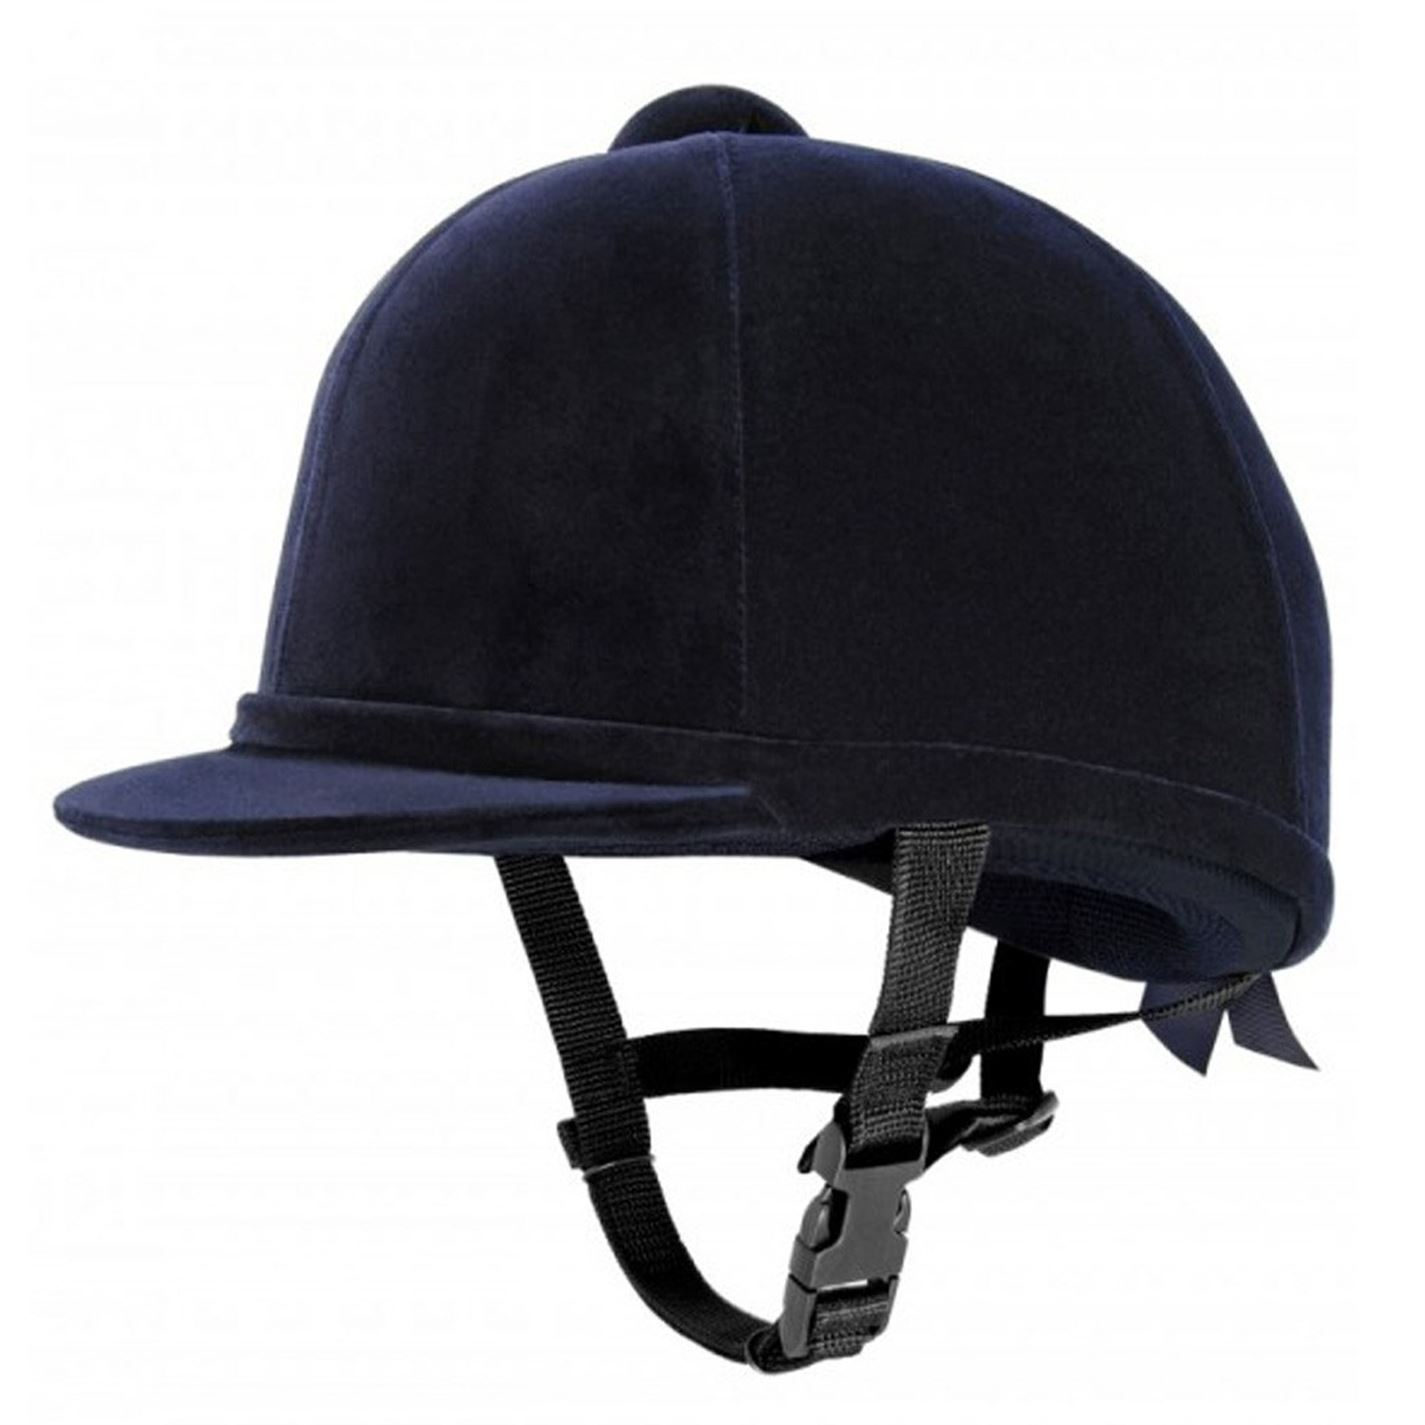 Charles Owen per bambini Young Young Young Riders Cappelli CAVALLI Accessorio b2b617